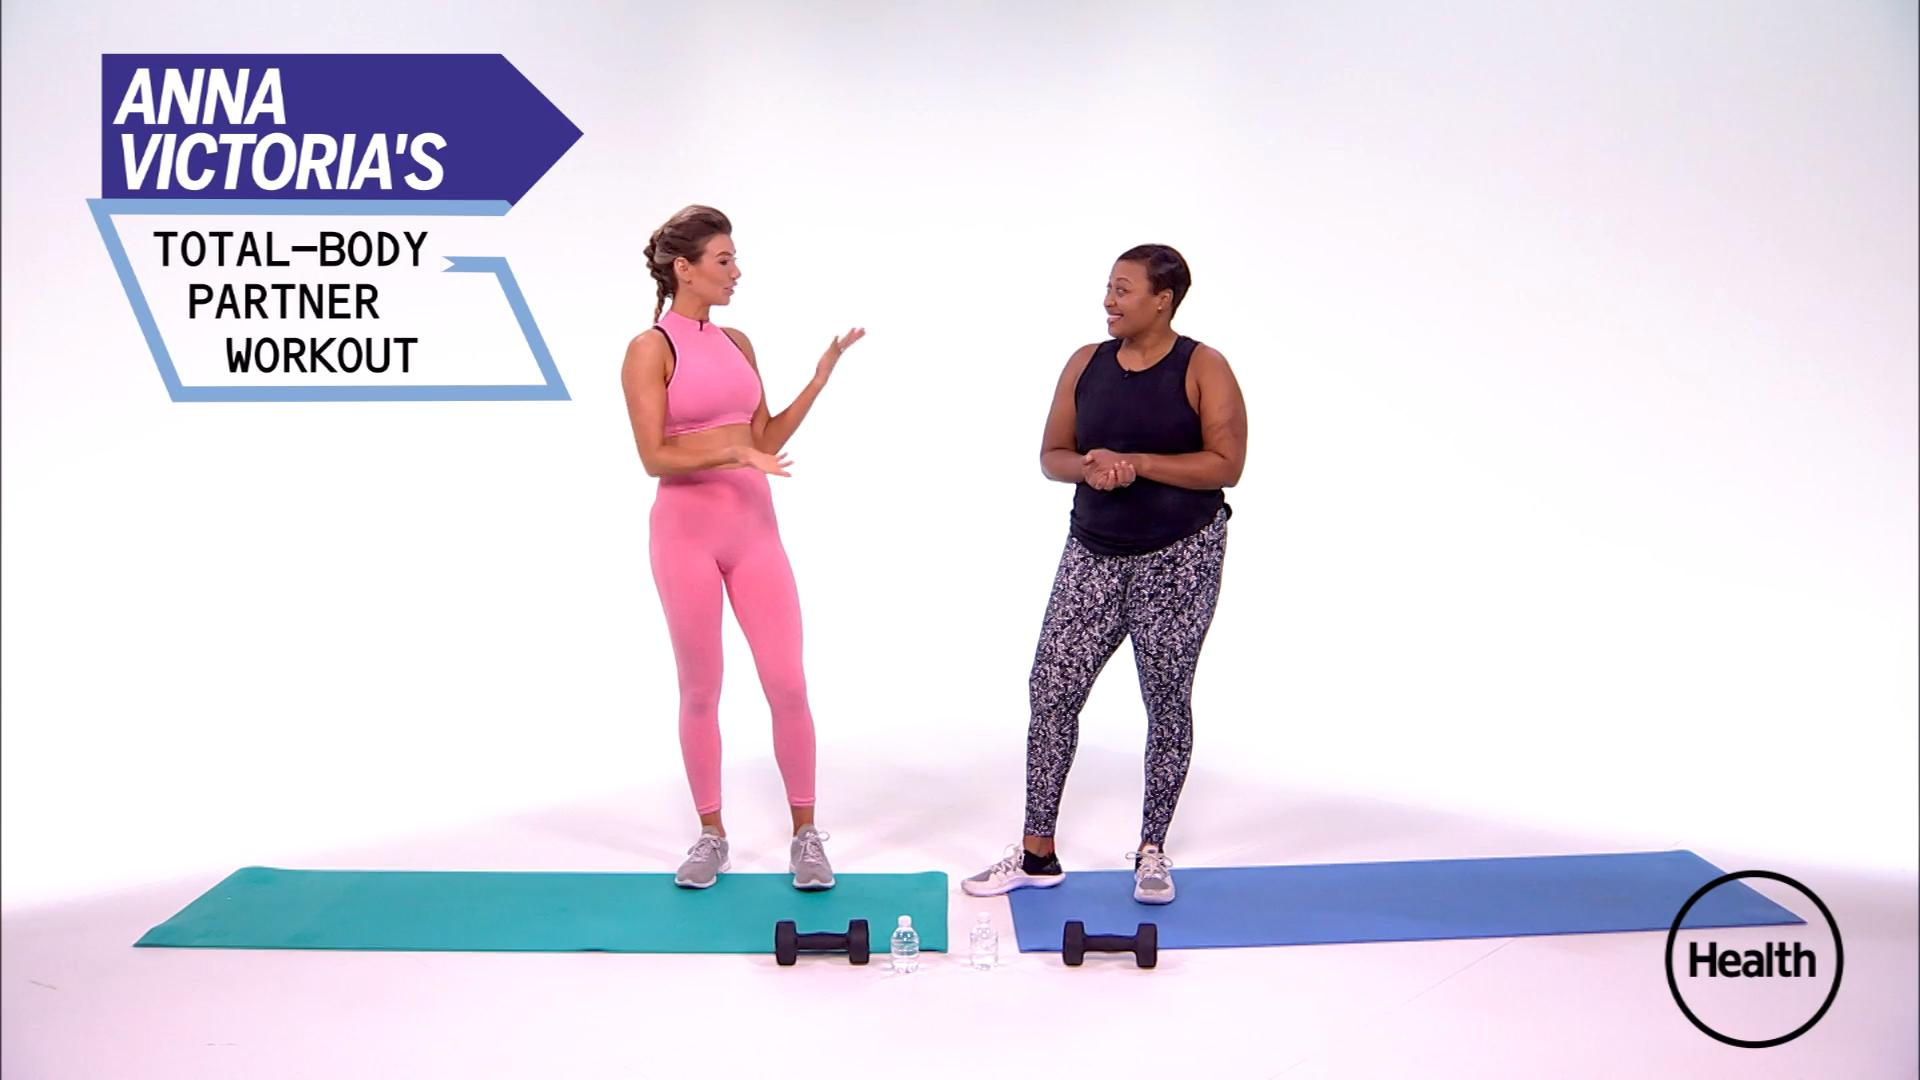 Recruit Your BFF for This Killer Total Body Workout for Partners—and Get Ready to Sweat